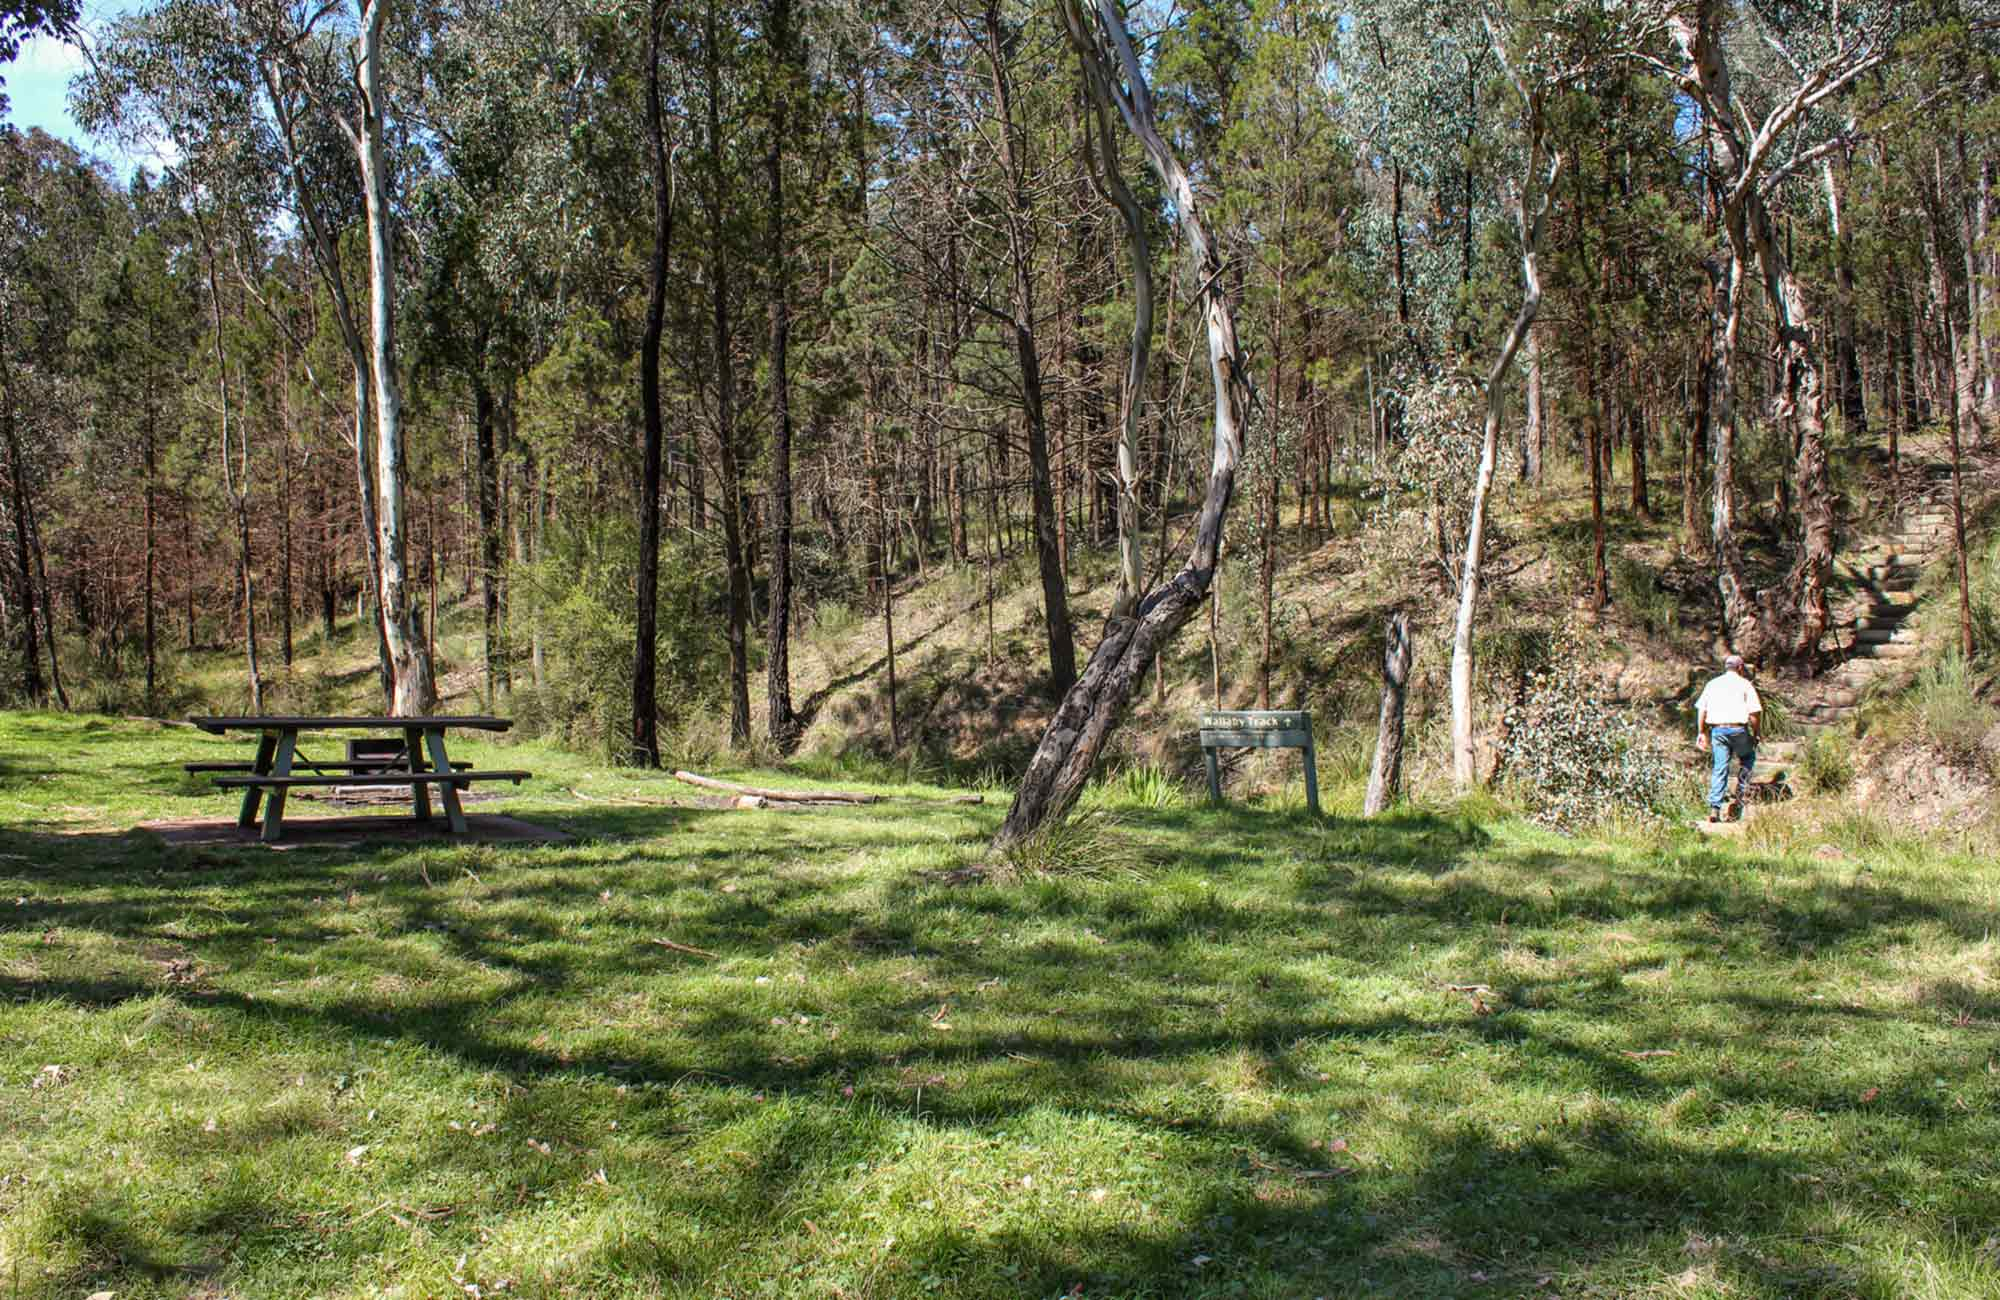 Wallaby Creek picnic area, Conimbla National Park. Photo: Claire Davis/NSW Government